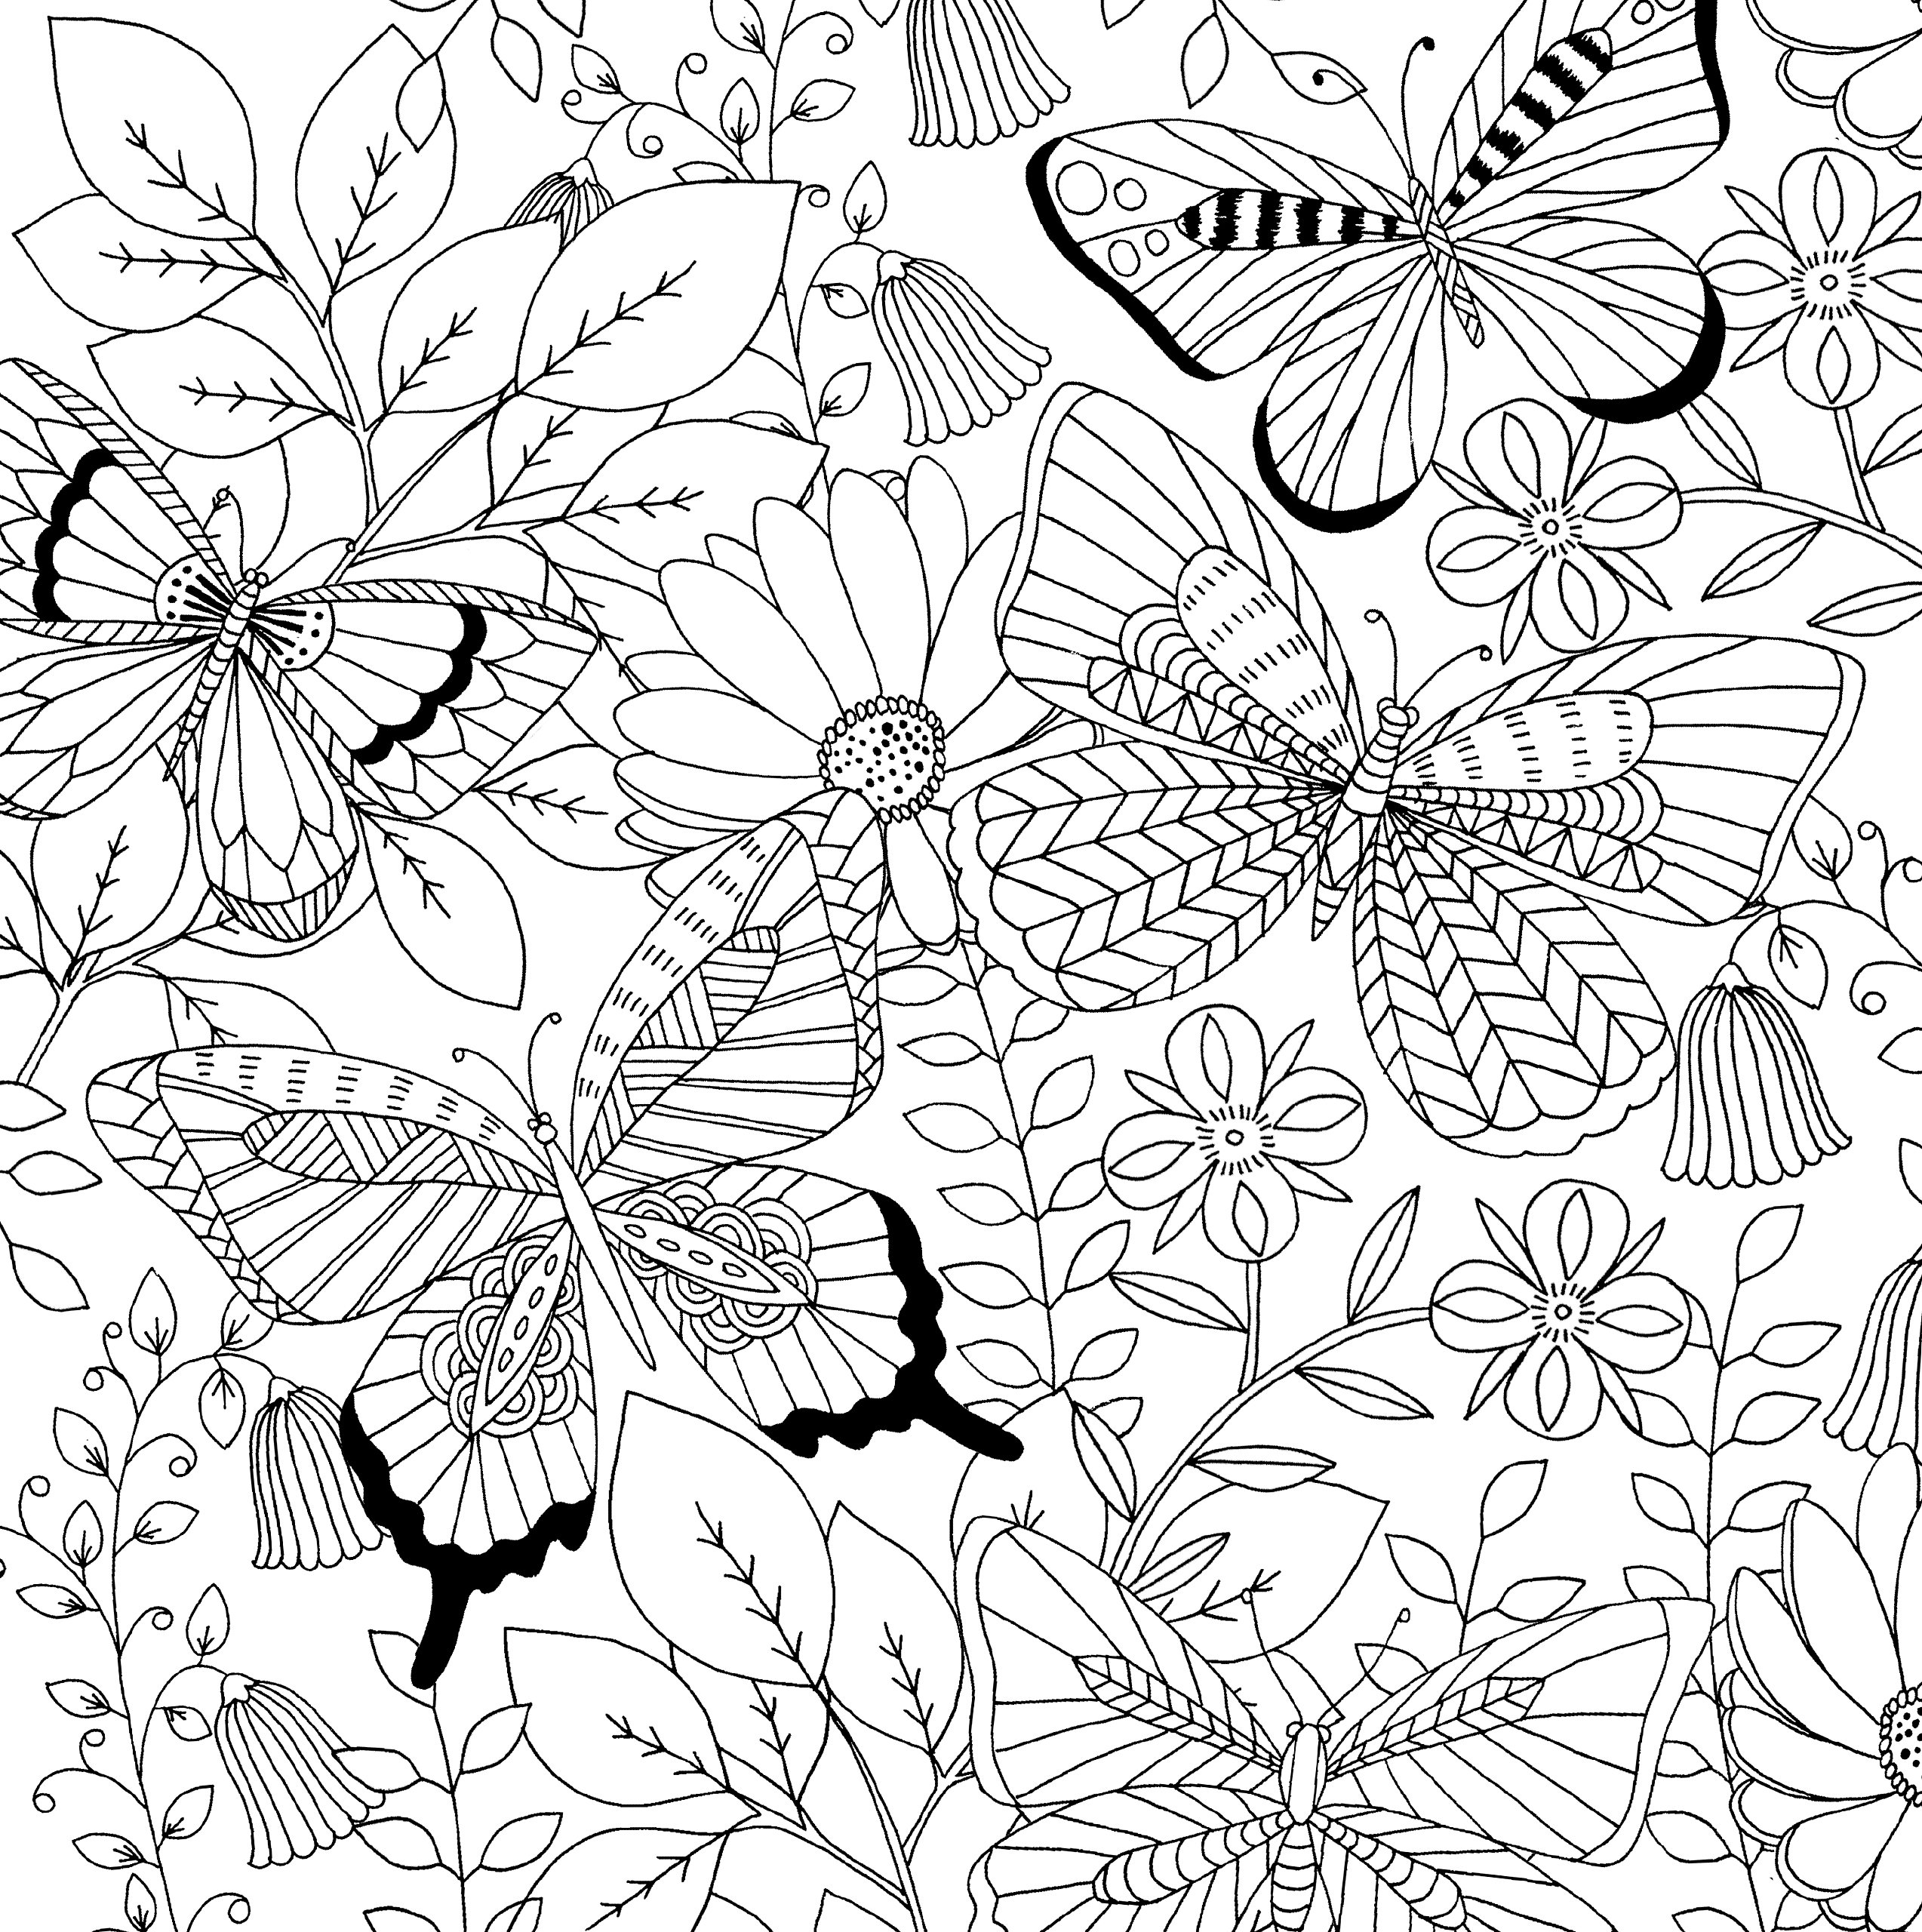 Coloring Book 31 Stress Relieving Designs Artists Books Studio Flora Waycott 9781441320094 Amazon